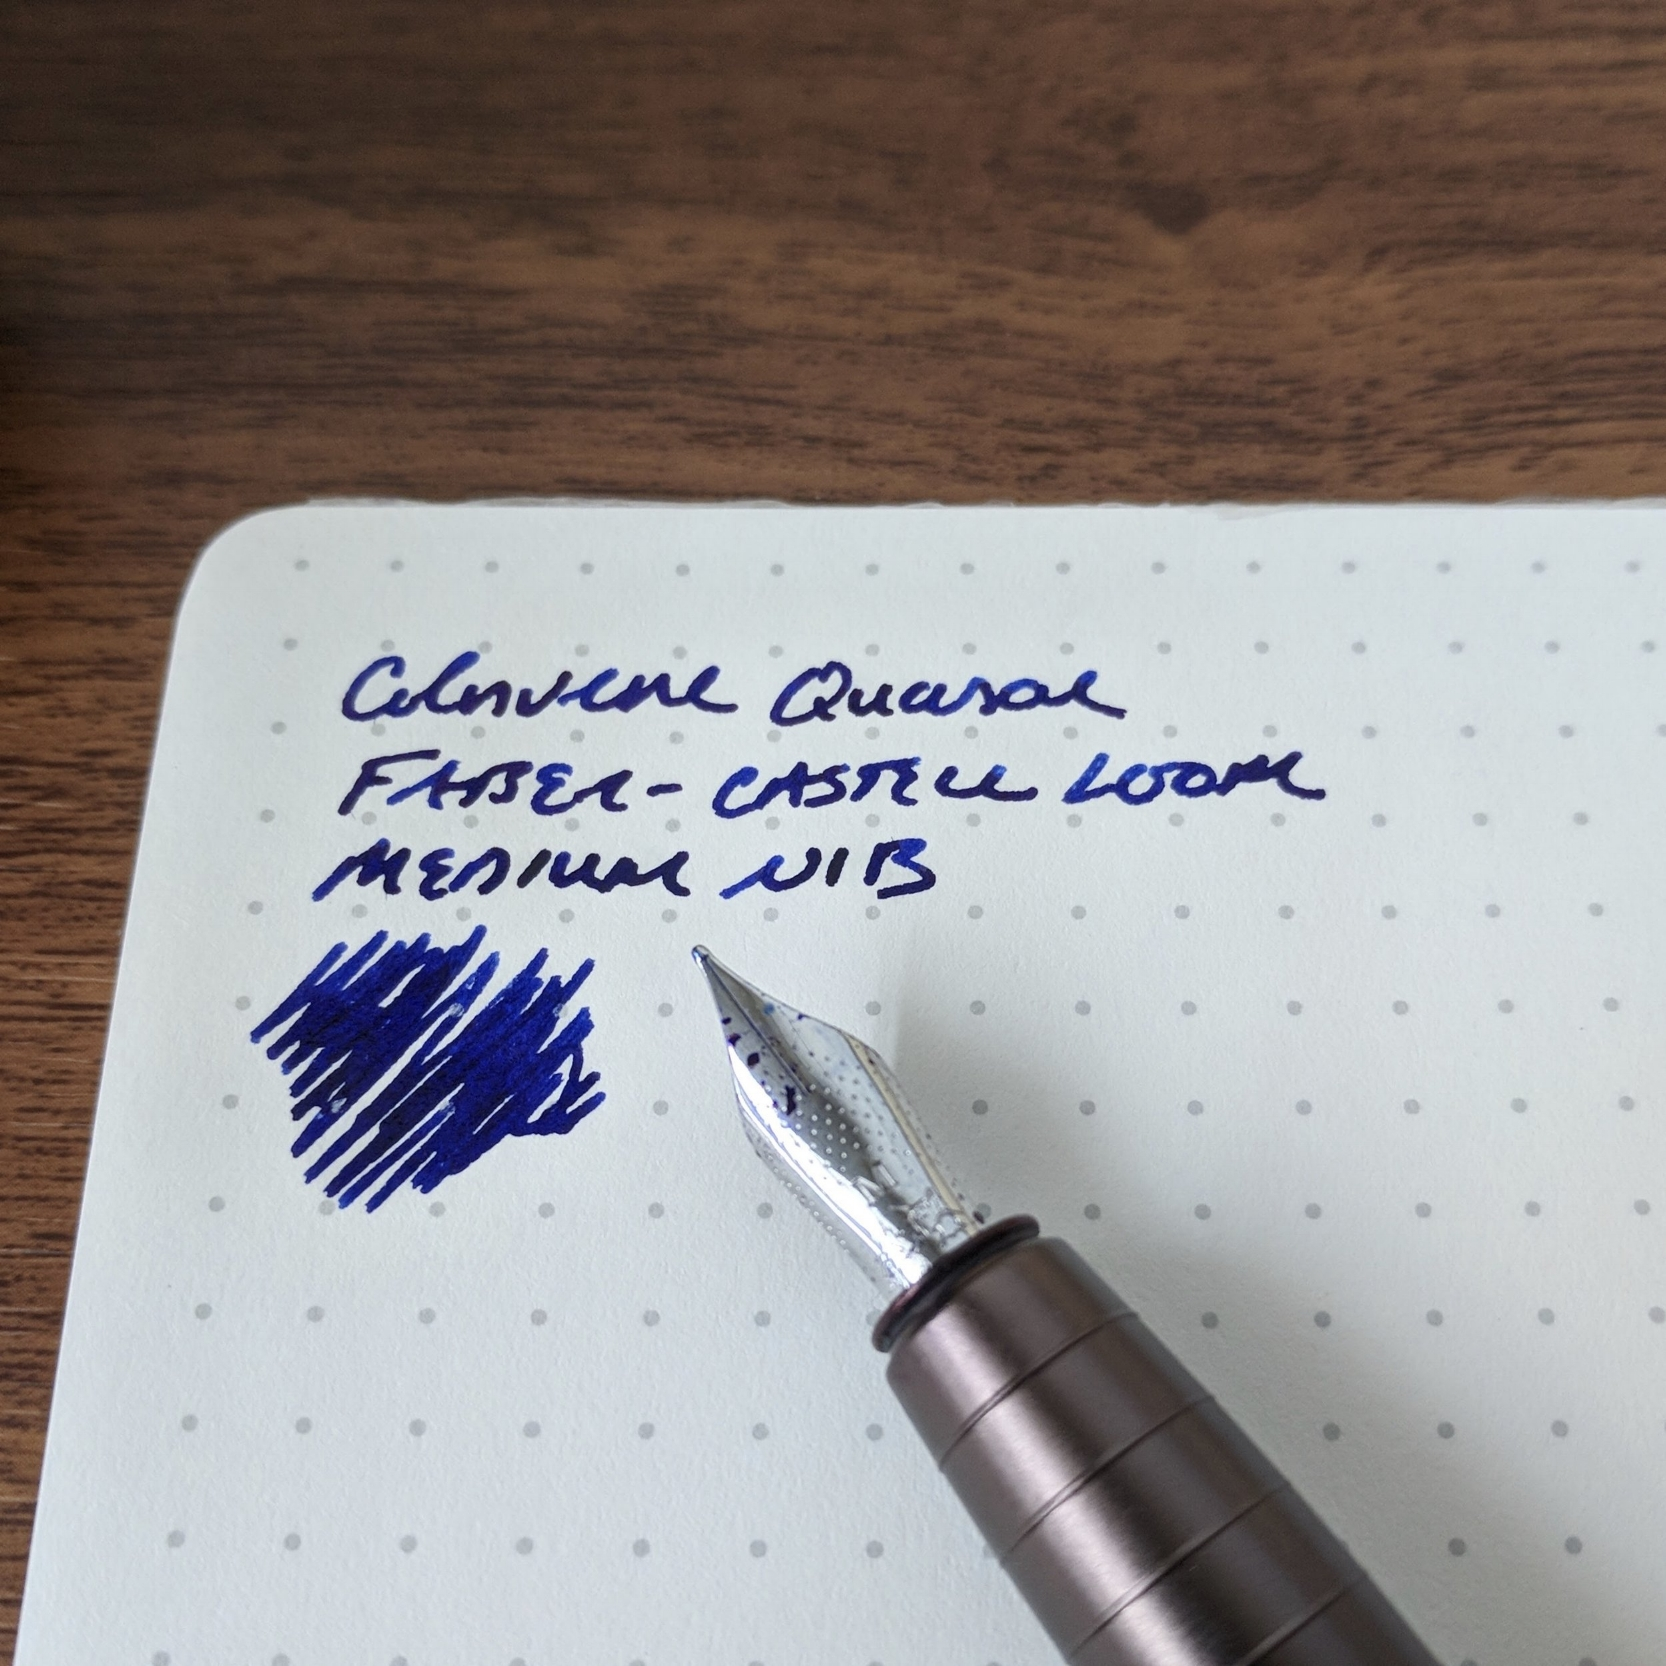 No issues with bleedthrough, feathering, or smearing on  Baron Fig Mastermind  paper. Even on office paper, this ink performed decently.